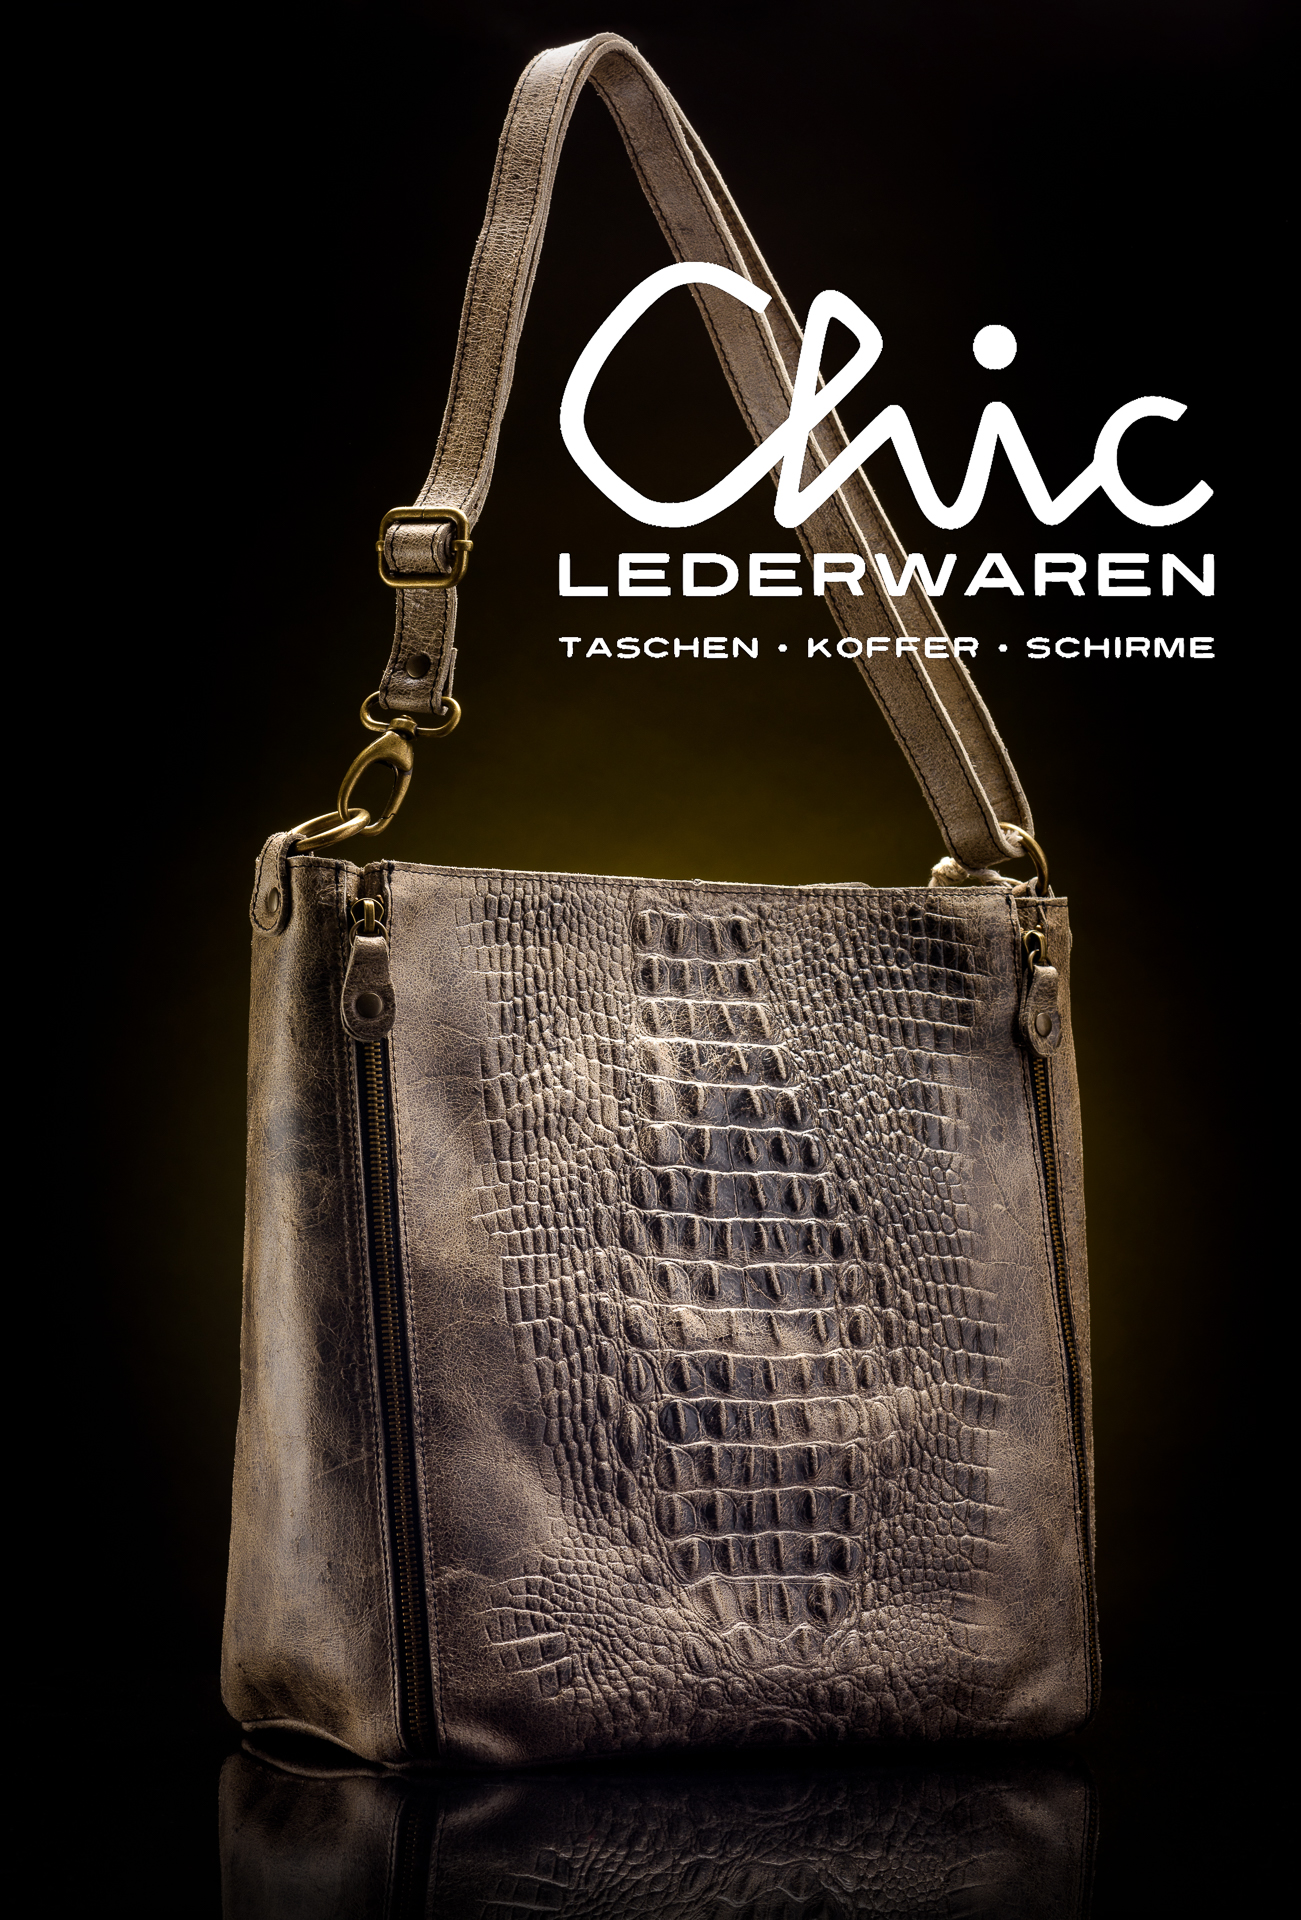 Handtasche Chic 01 Produkt Advertising Werbung by JHofer-Foto Juergen Hofer